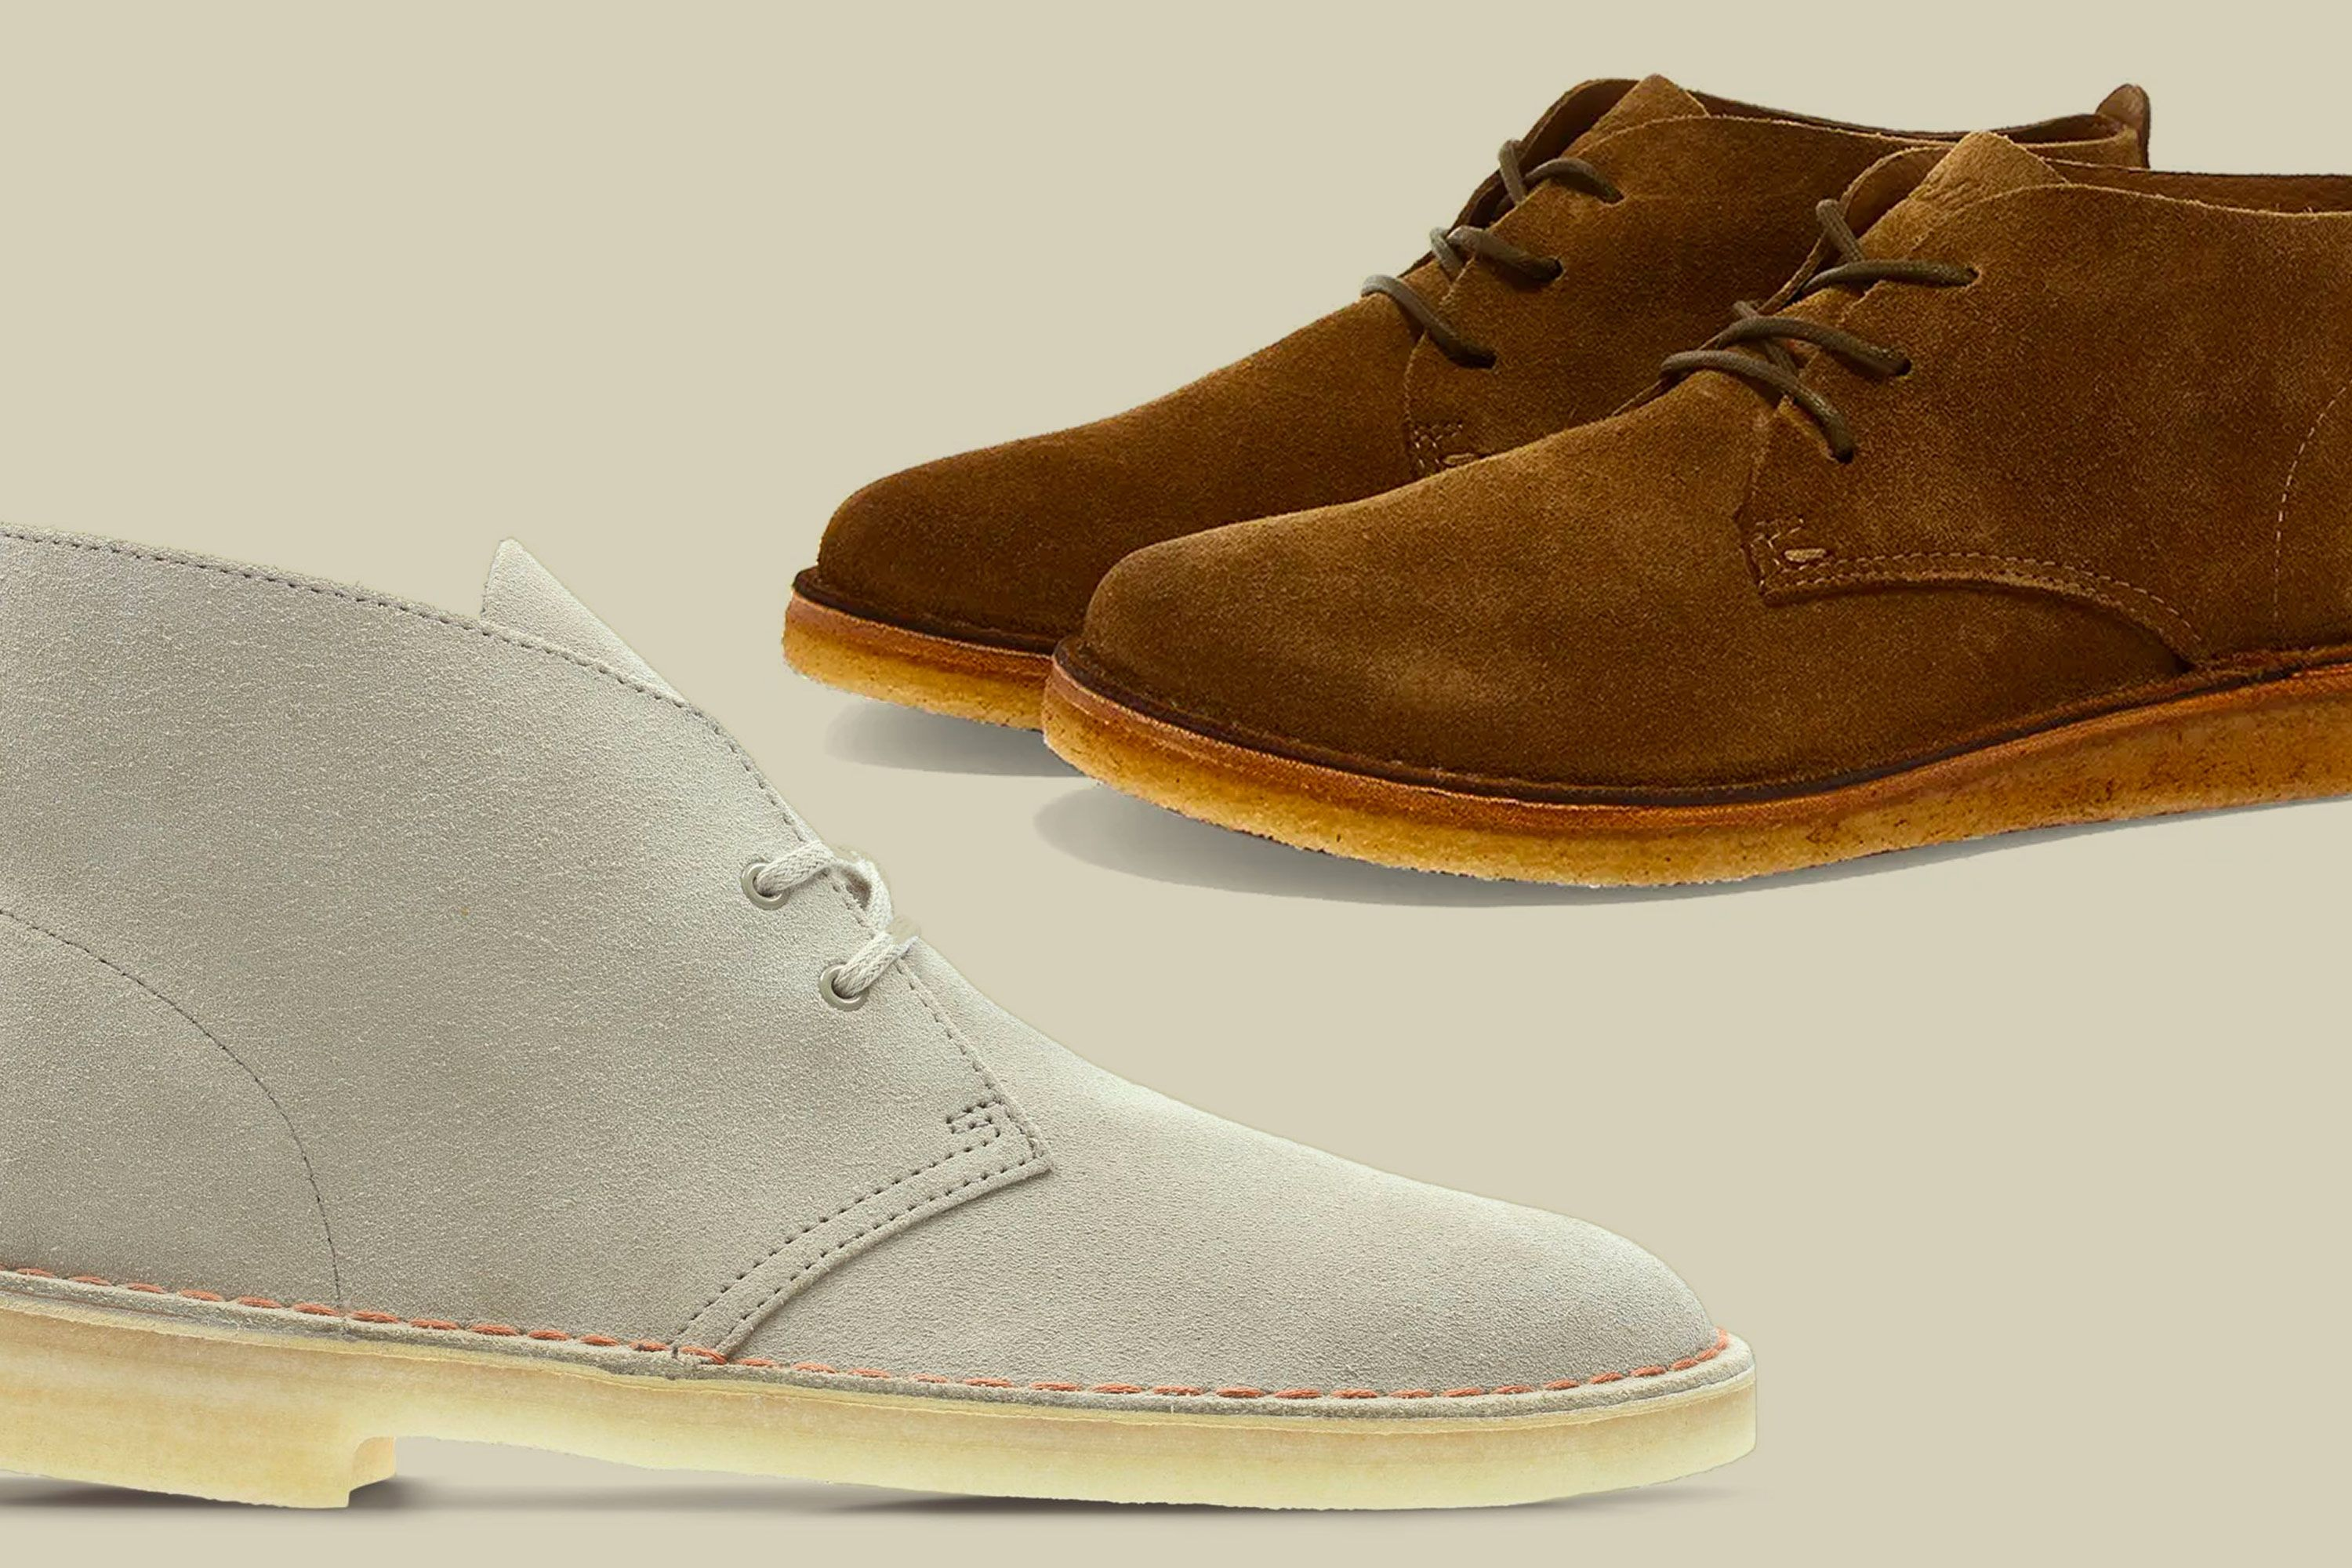 The 9 Best Chukka Boots to Buy